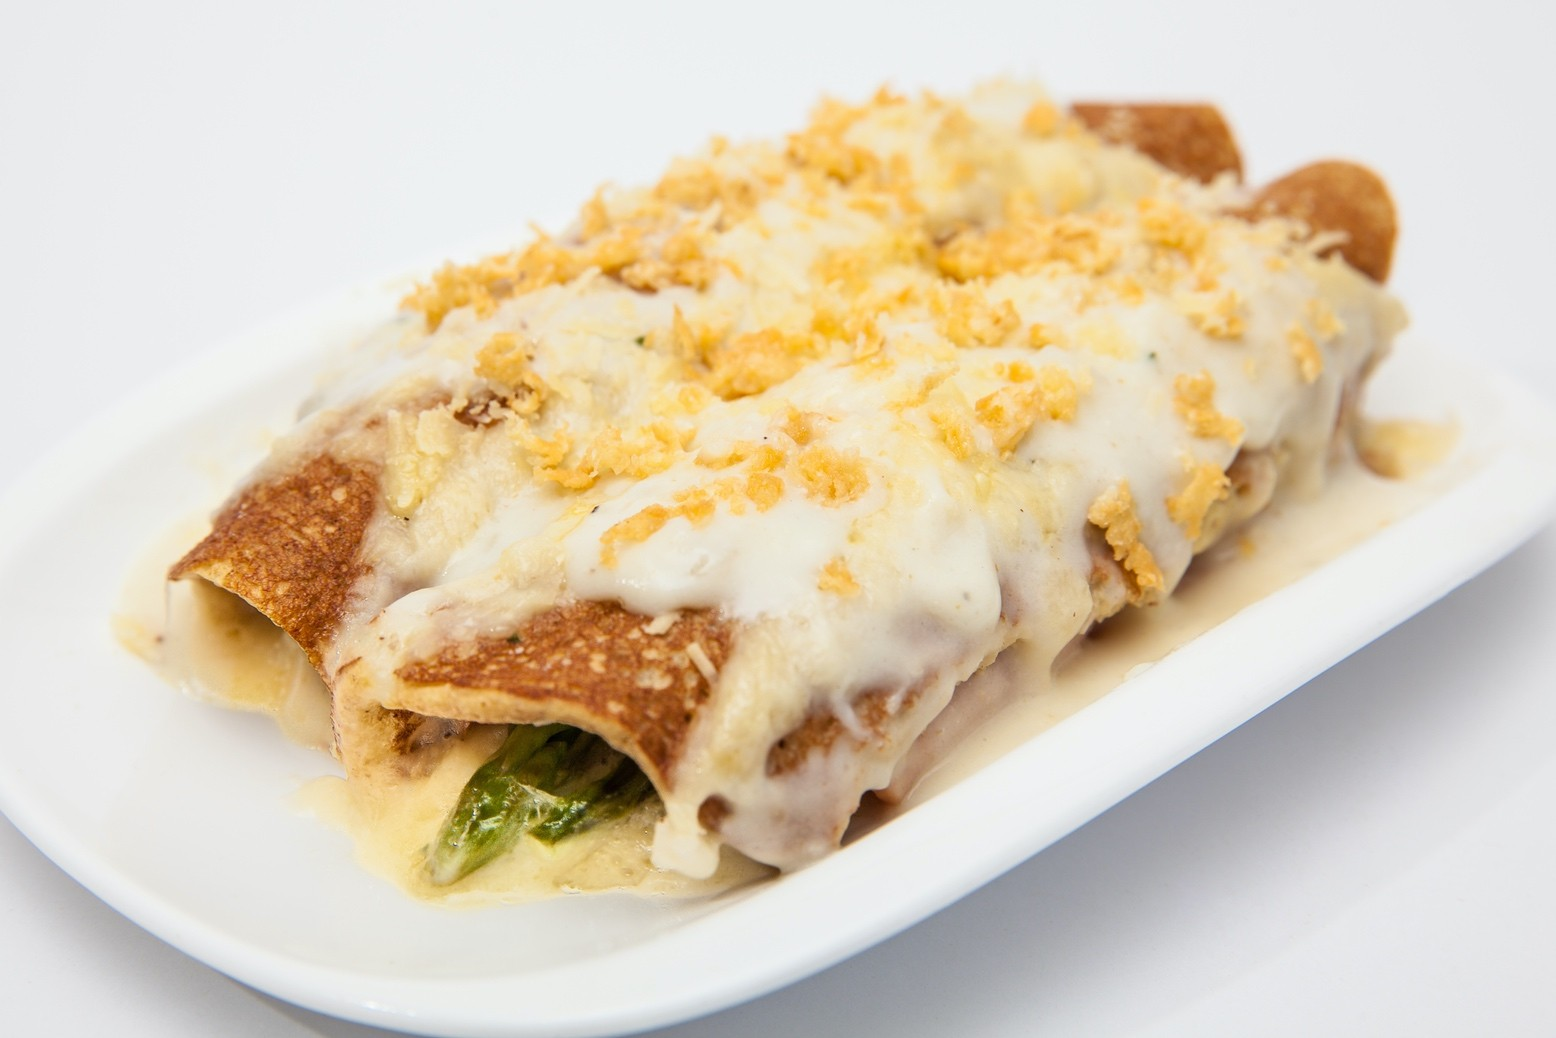 Asparagus & Mushroom Stuffed Crepes with Sherry Cream Sauce